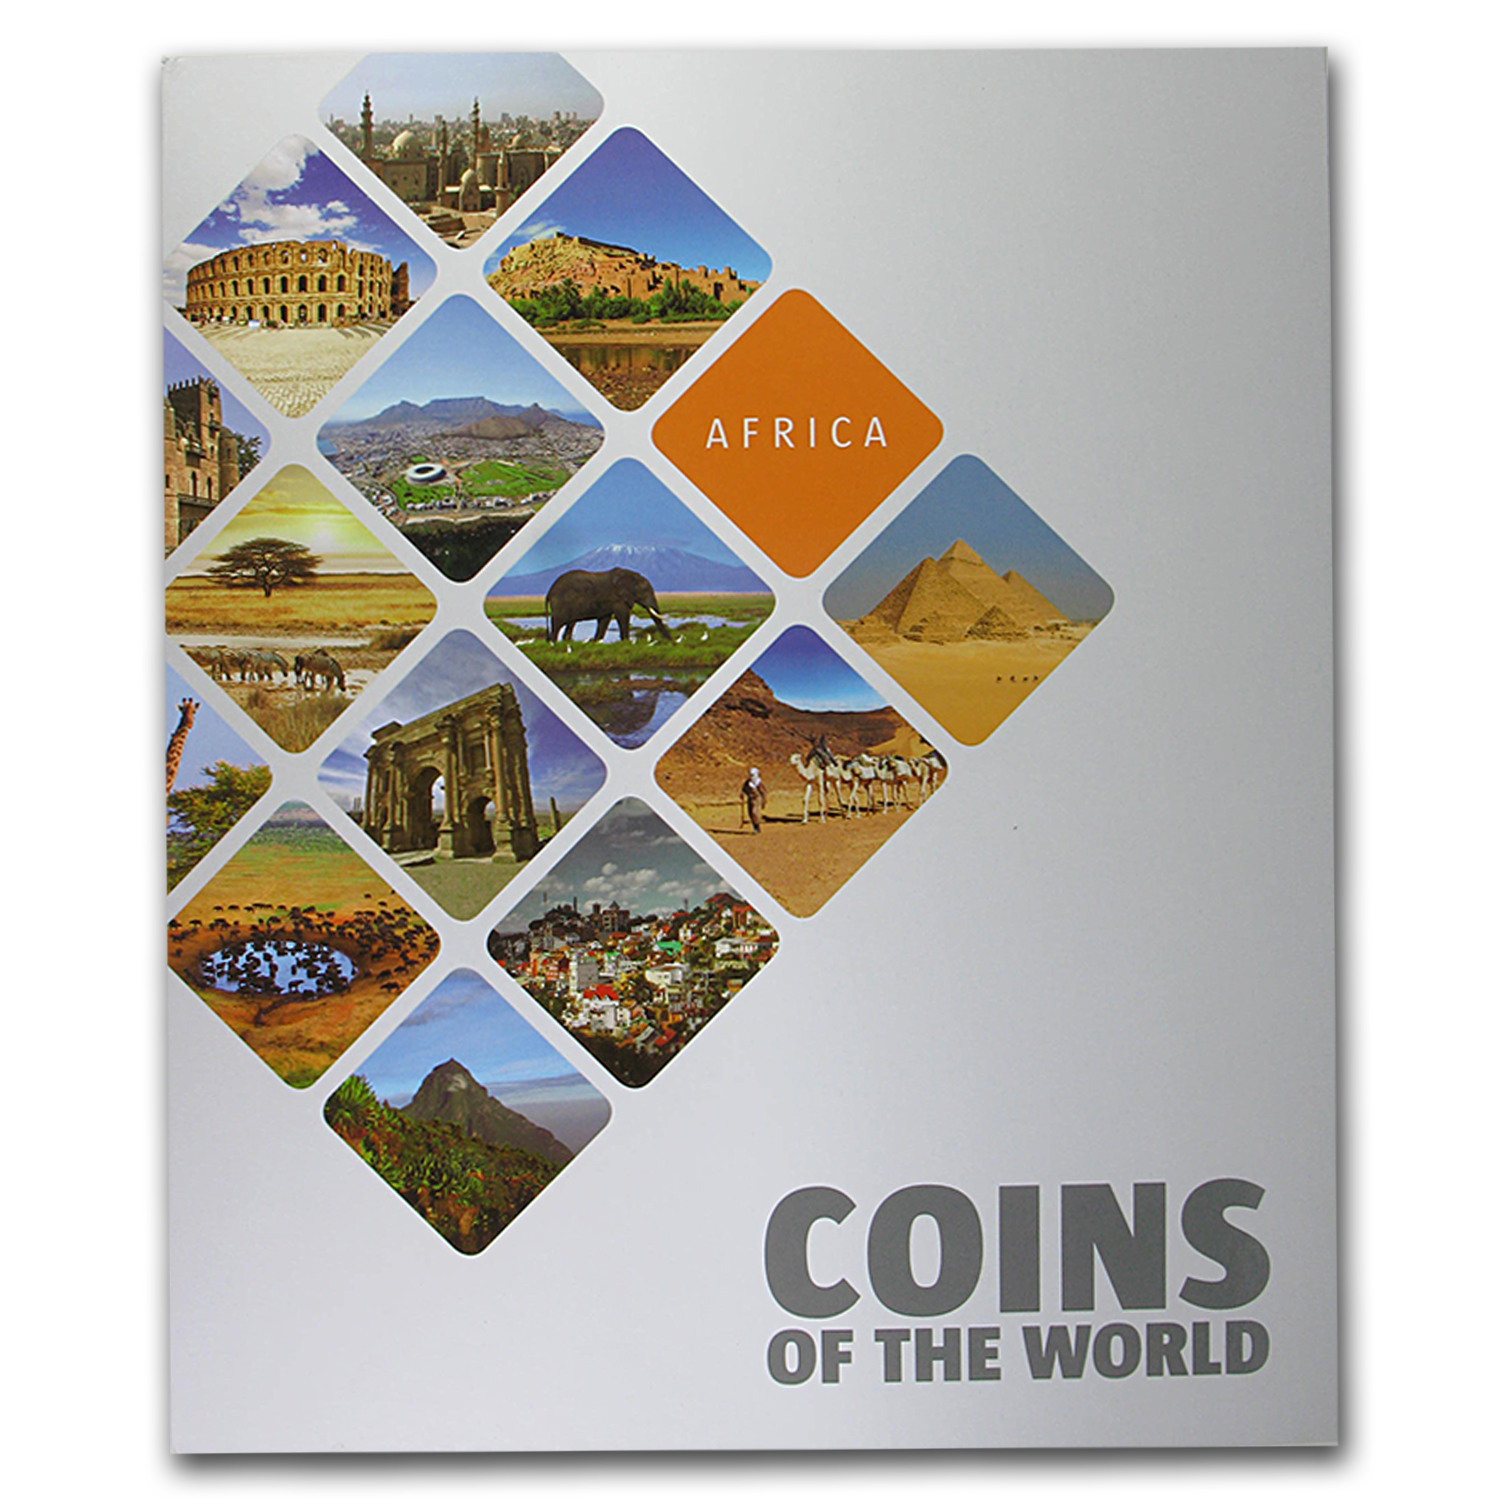 Coins of the World - Africa (42 coins)